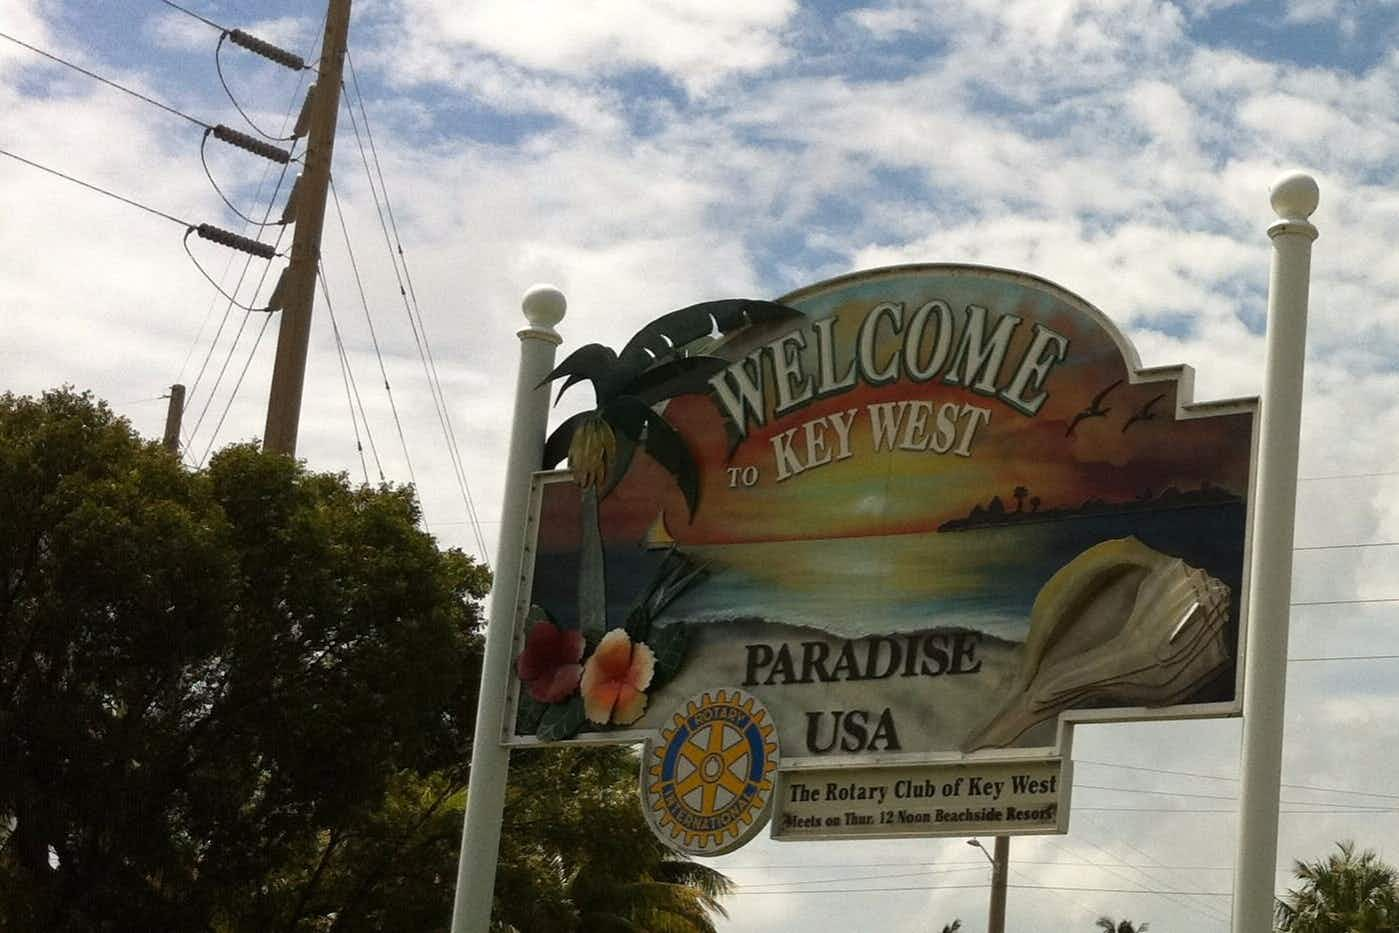 Florida's Key West welcome sign is back home again